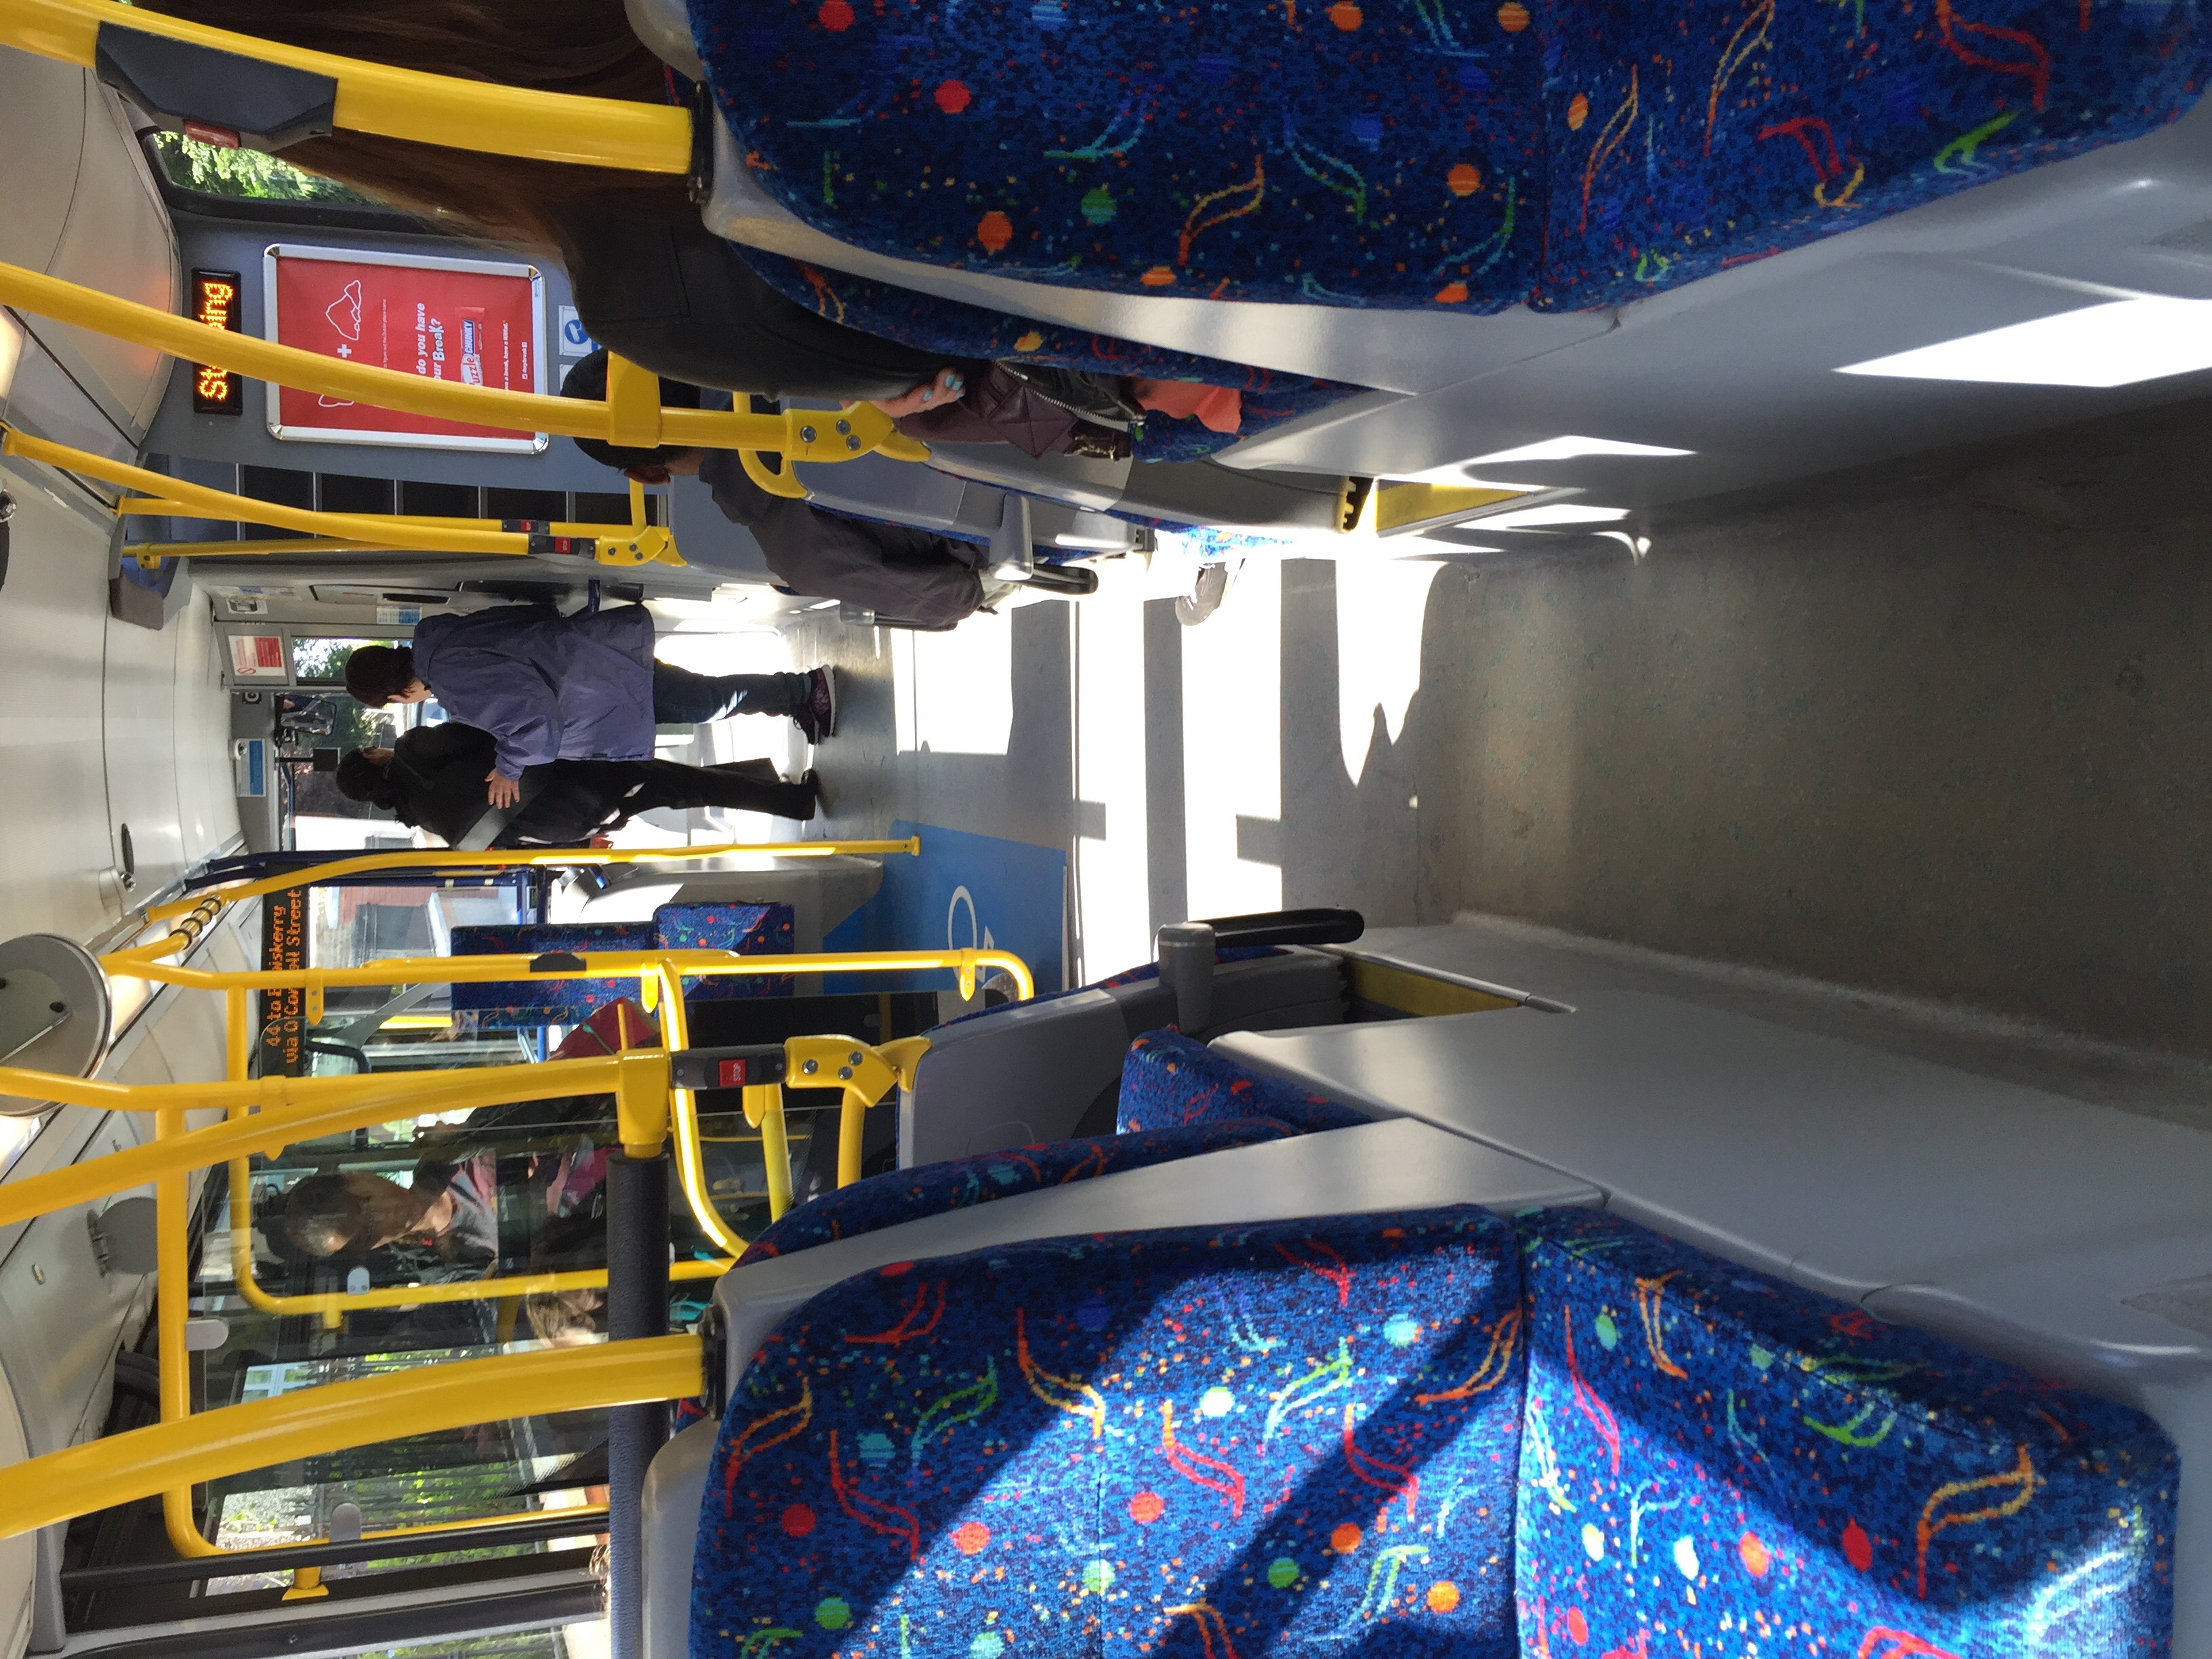 Dublin's Dart Bus, very easy to take to Enniskerry and loved the convenience of the Leap Card!